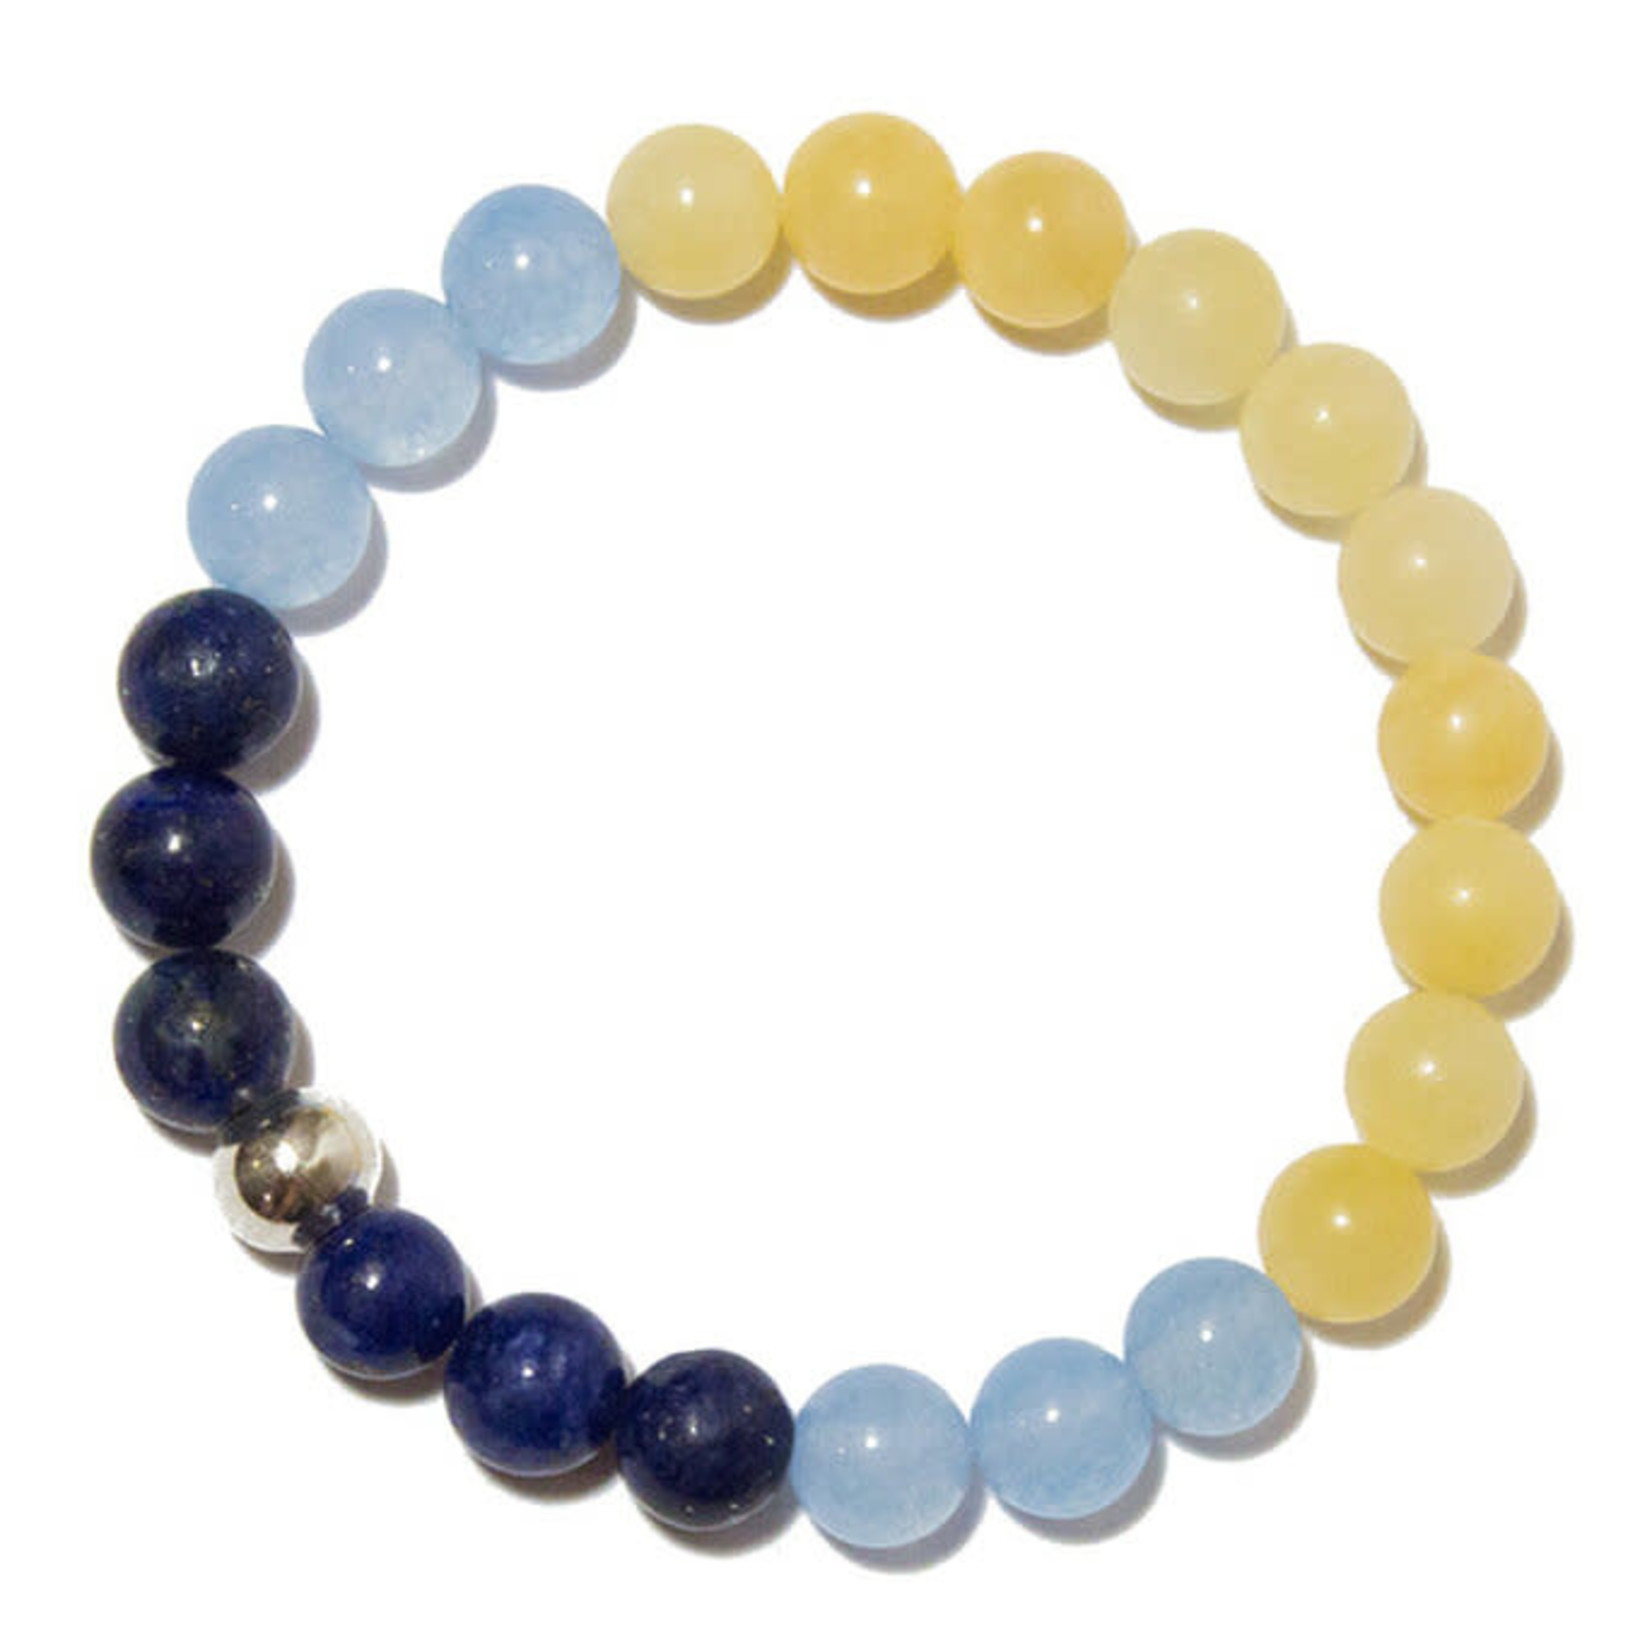 Our Wave The One In Bracelet